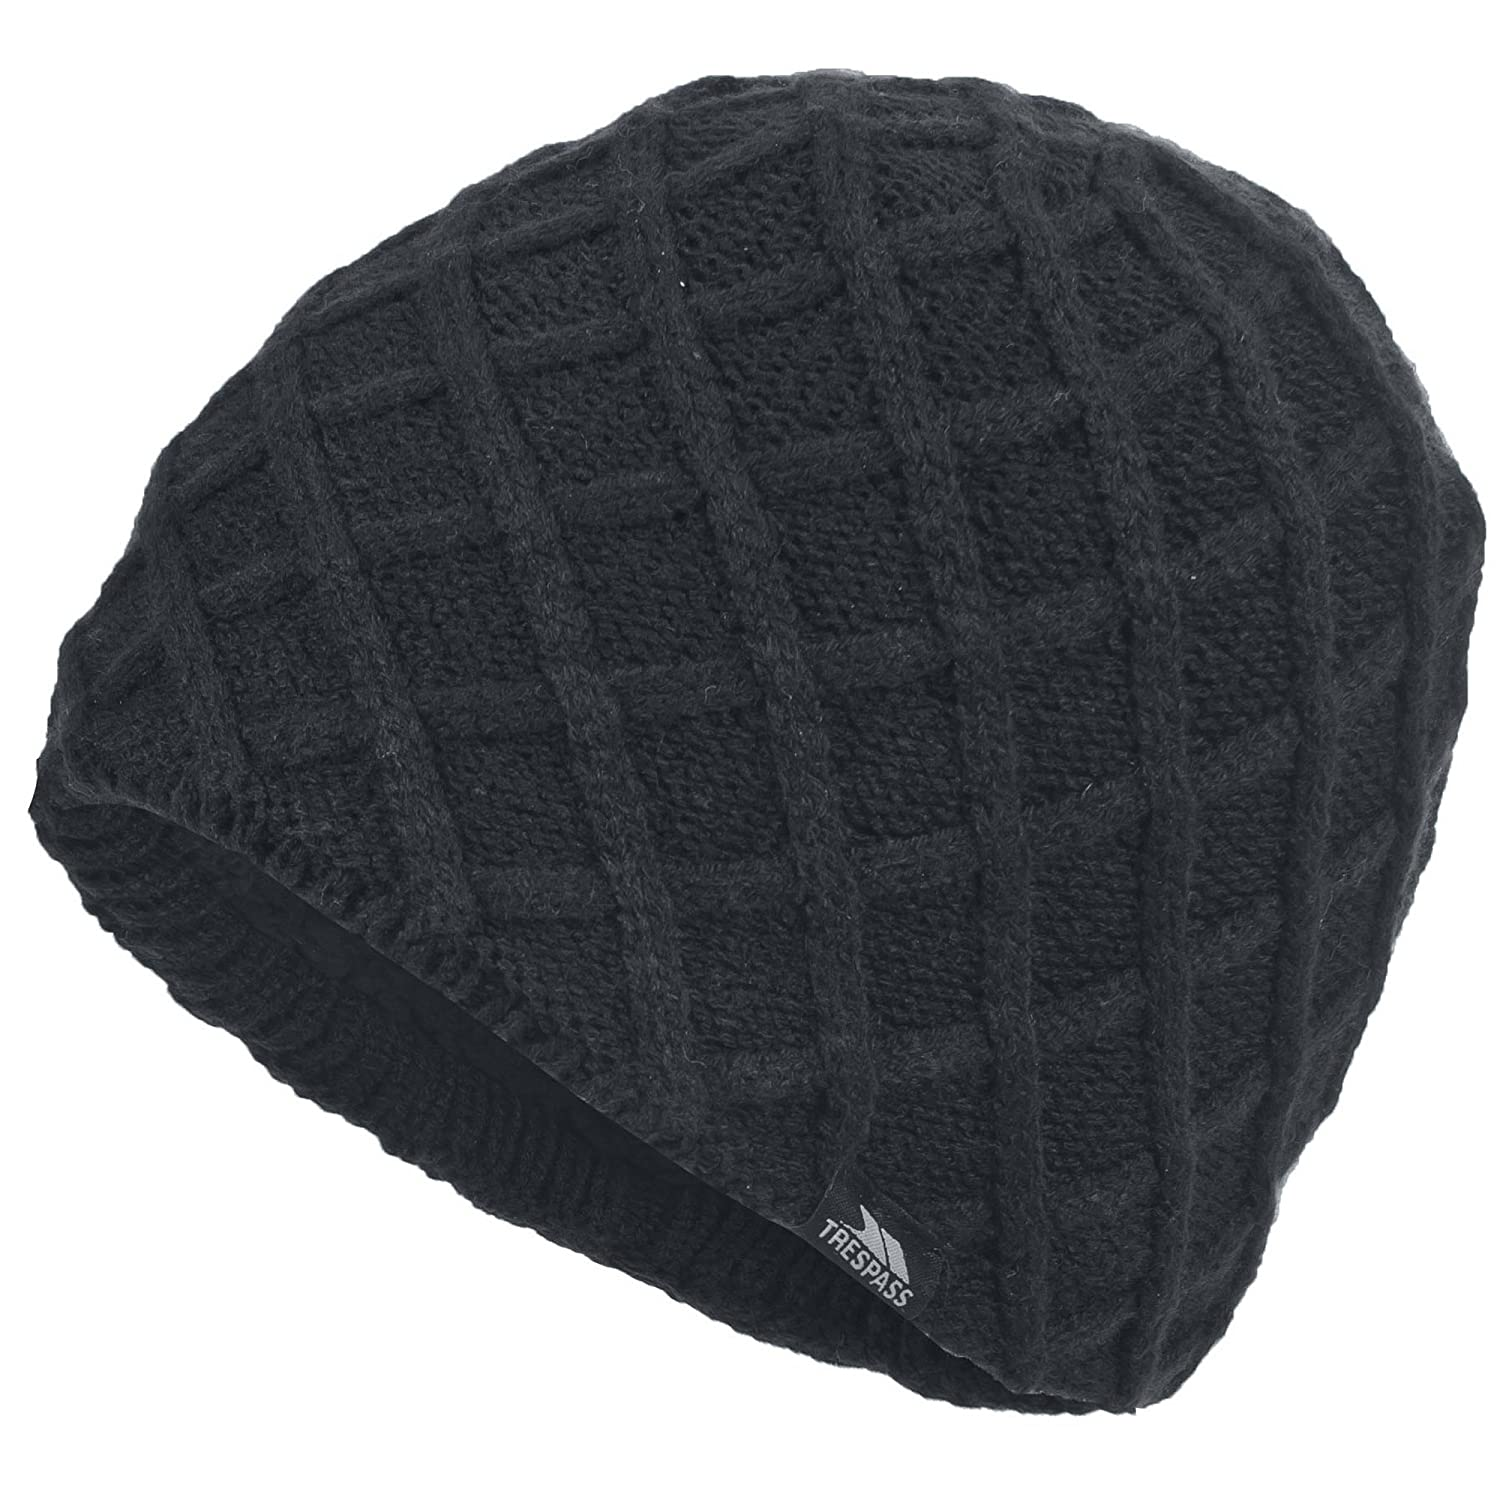 Trespass Mens Abel Knitted Winter Beanie Hat (One Size) (Black) UTTP832_1